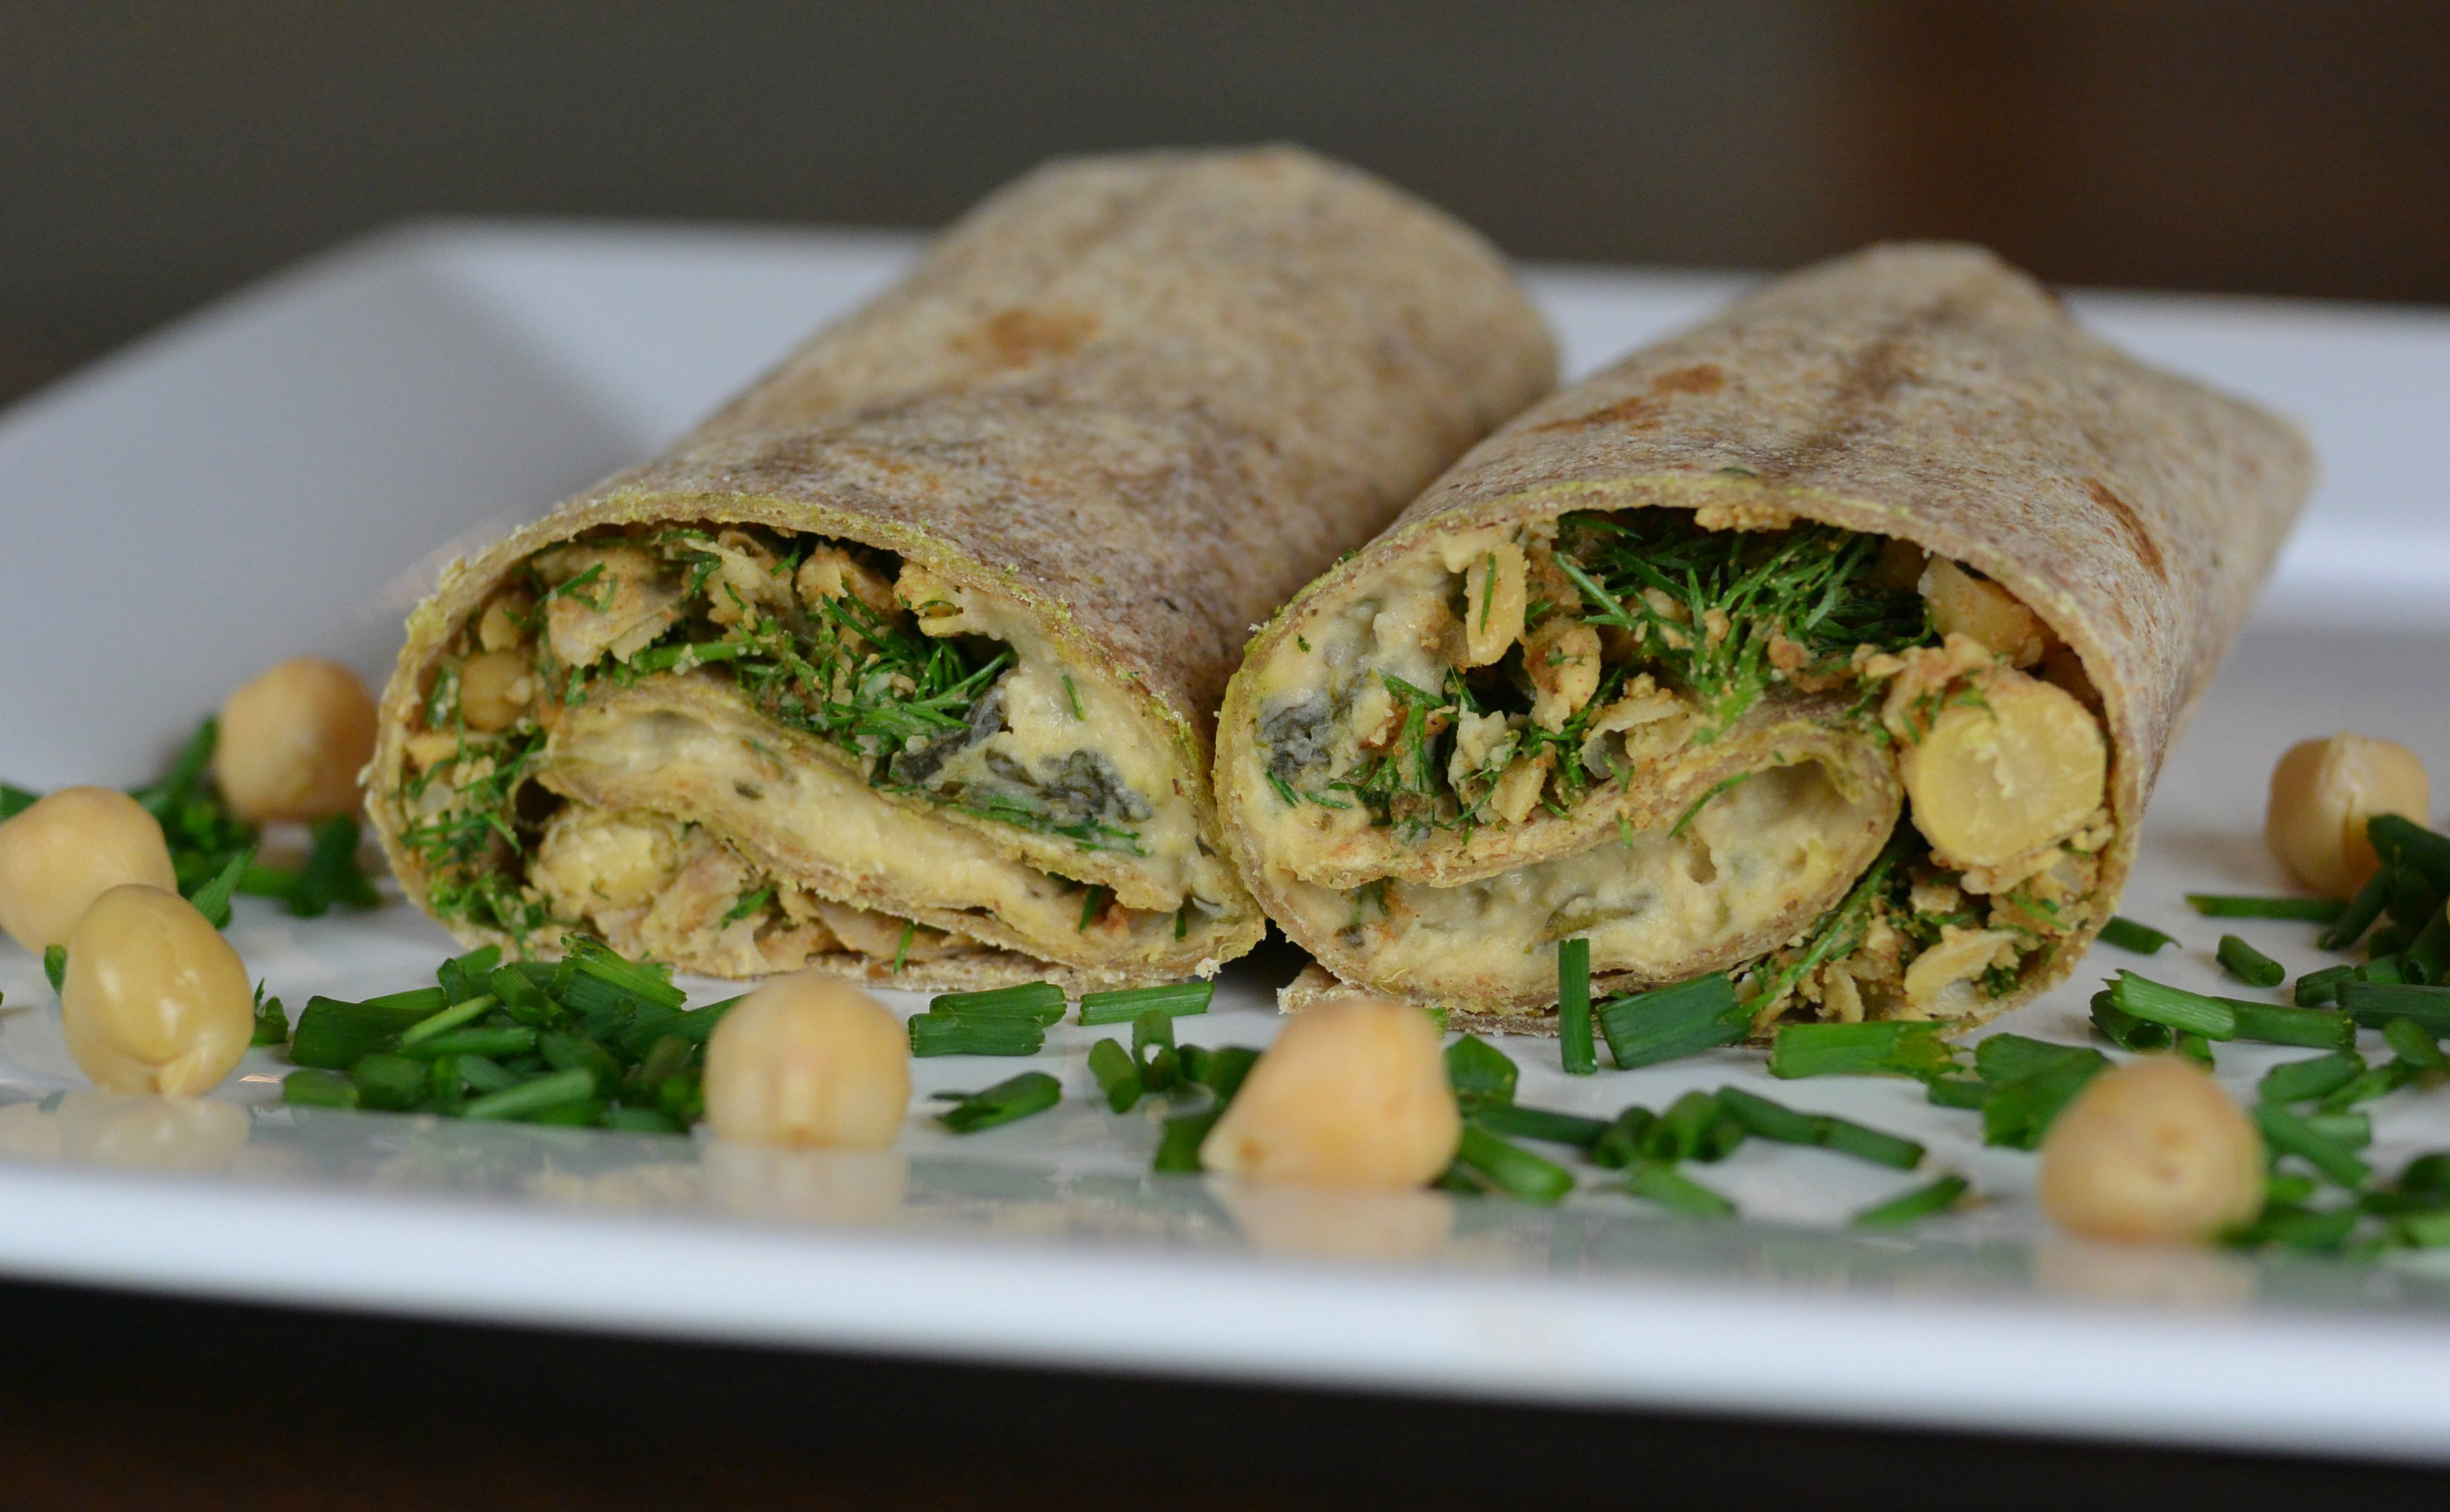 Artichoke-hummus wraps with spinach tortillas